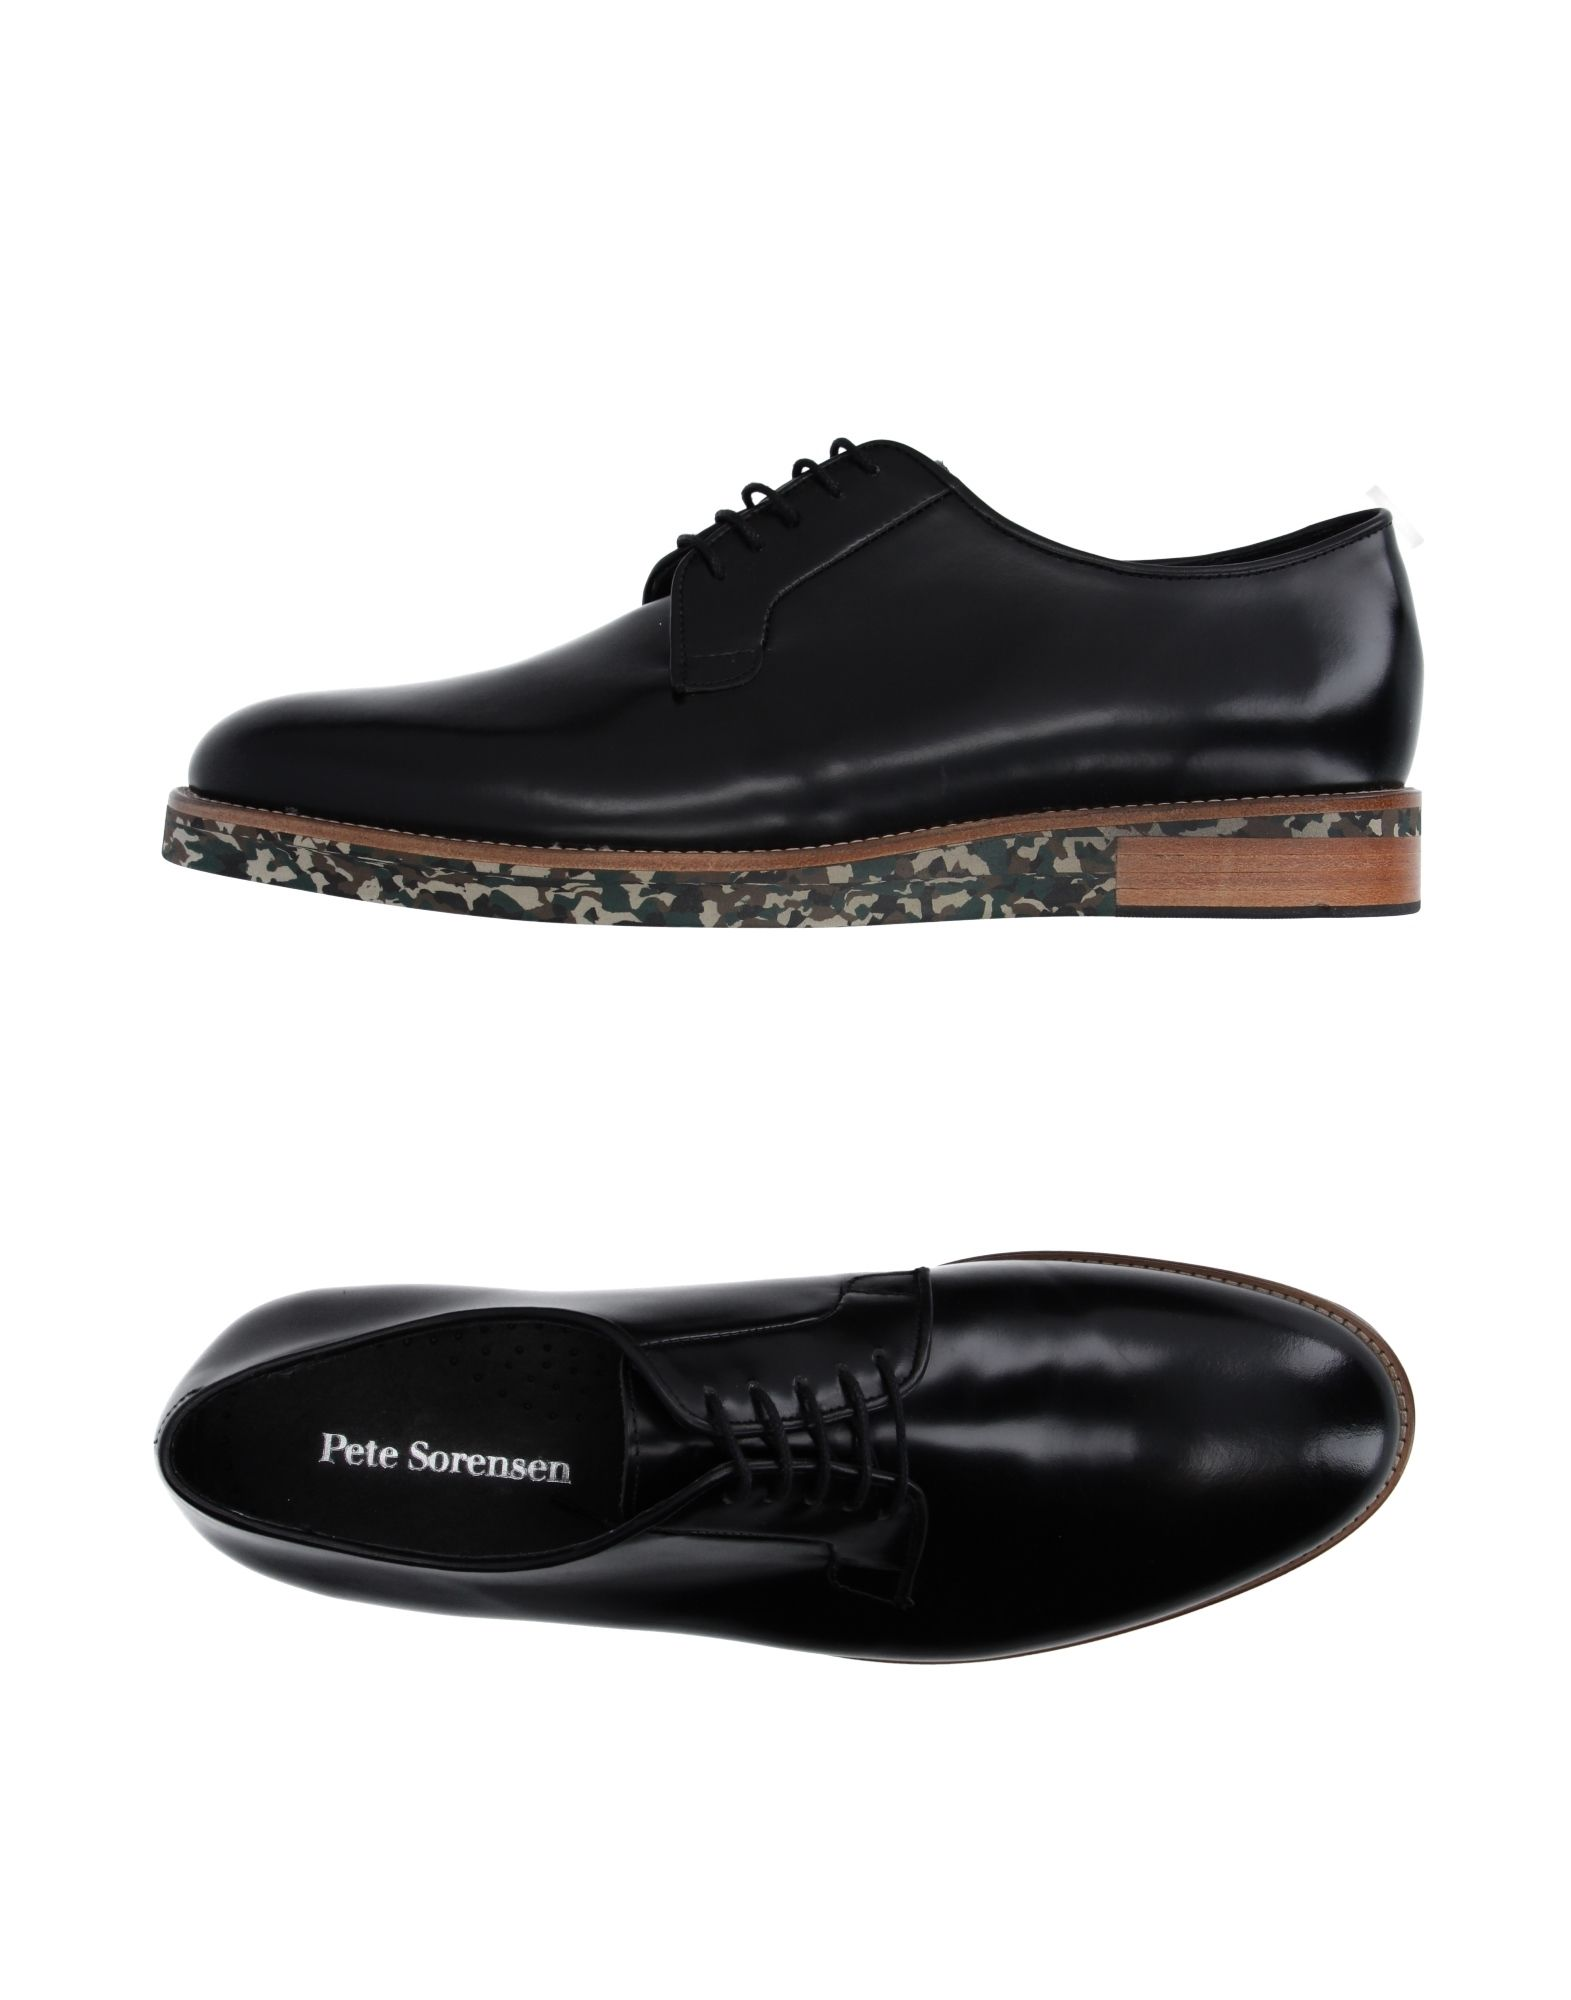 PETE SORENSEN Laced Shoes in Black